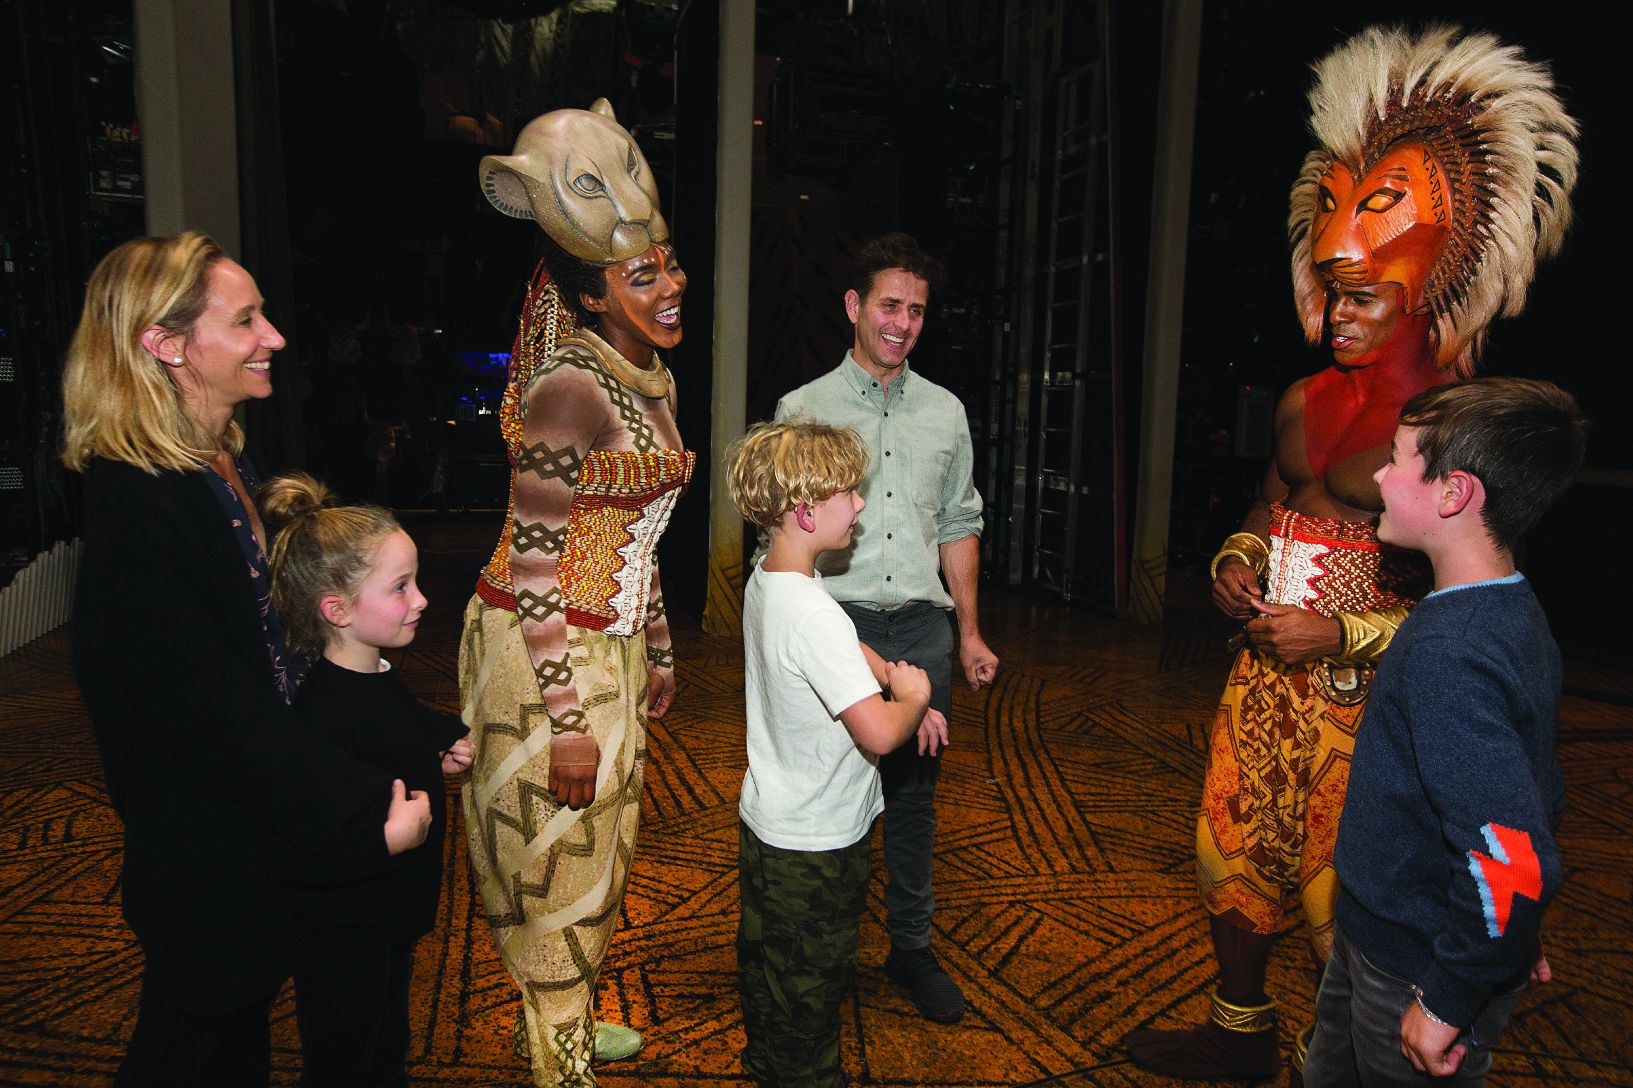 New King On The Block Joey Mcintyre And Family Meet Lion King Cast Members At Opera House The Boston Globe